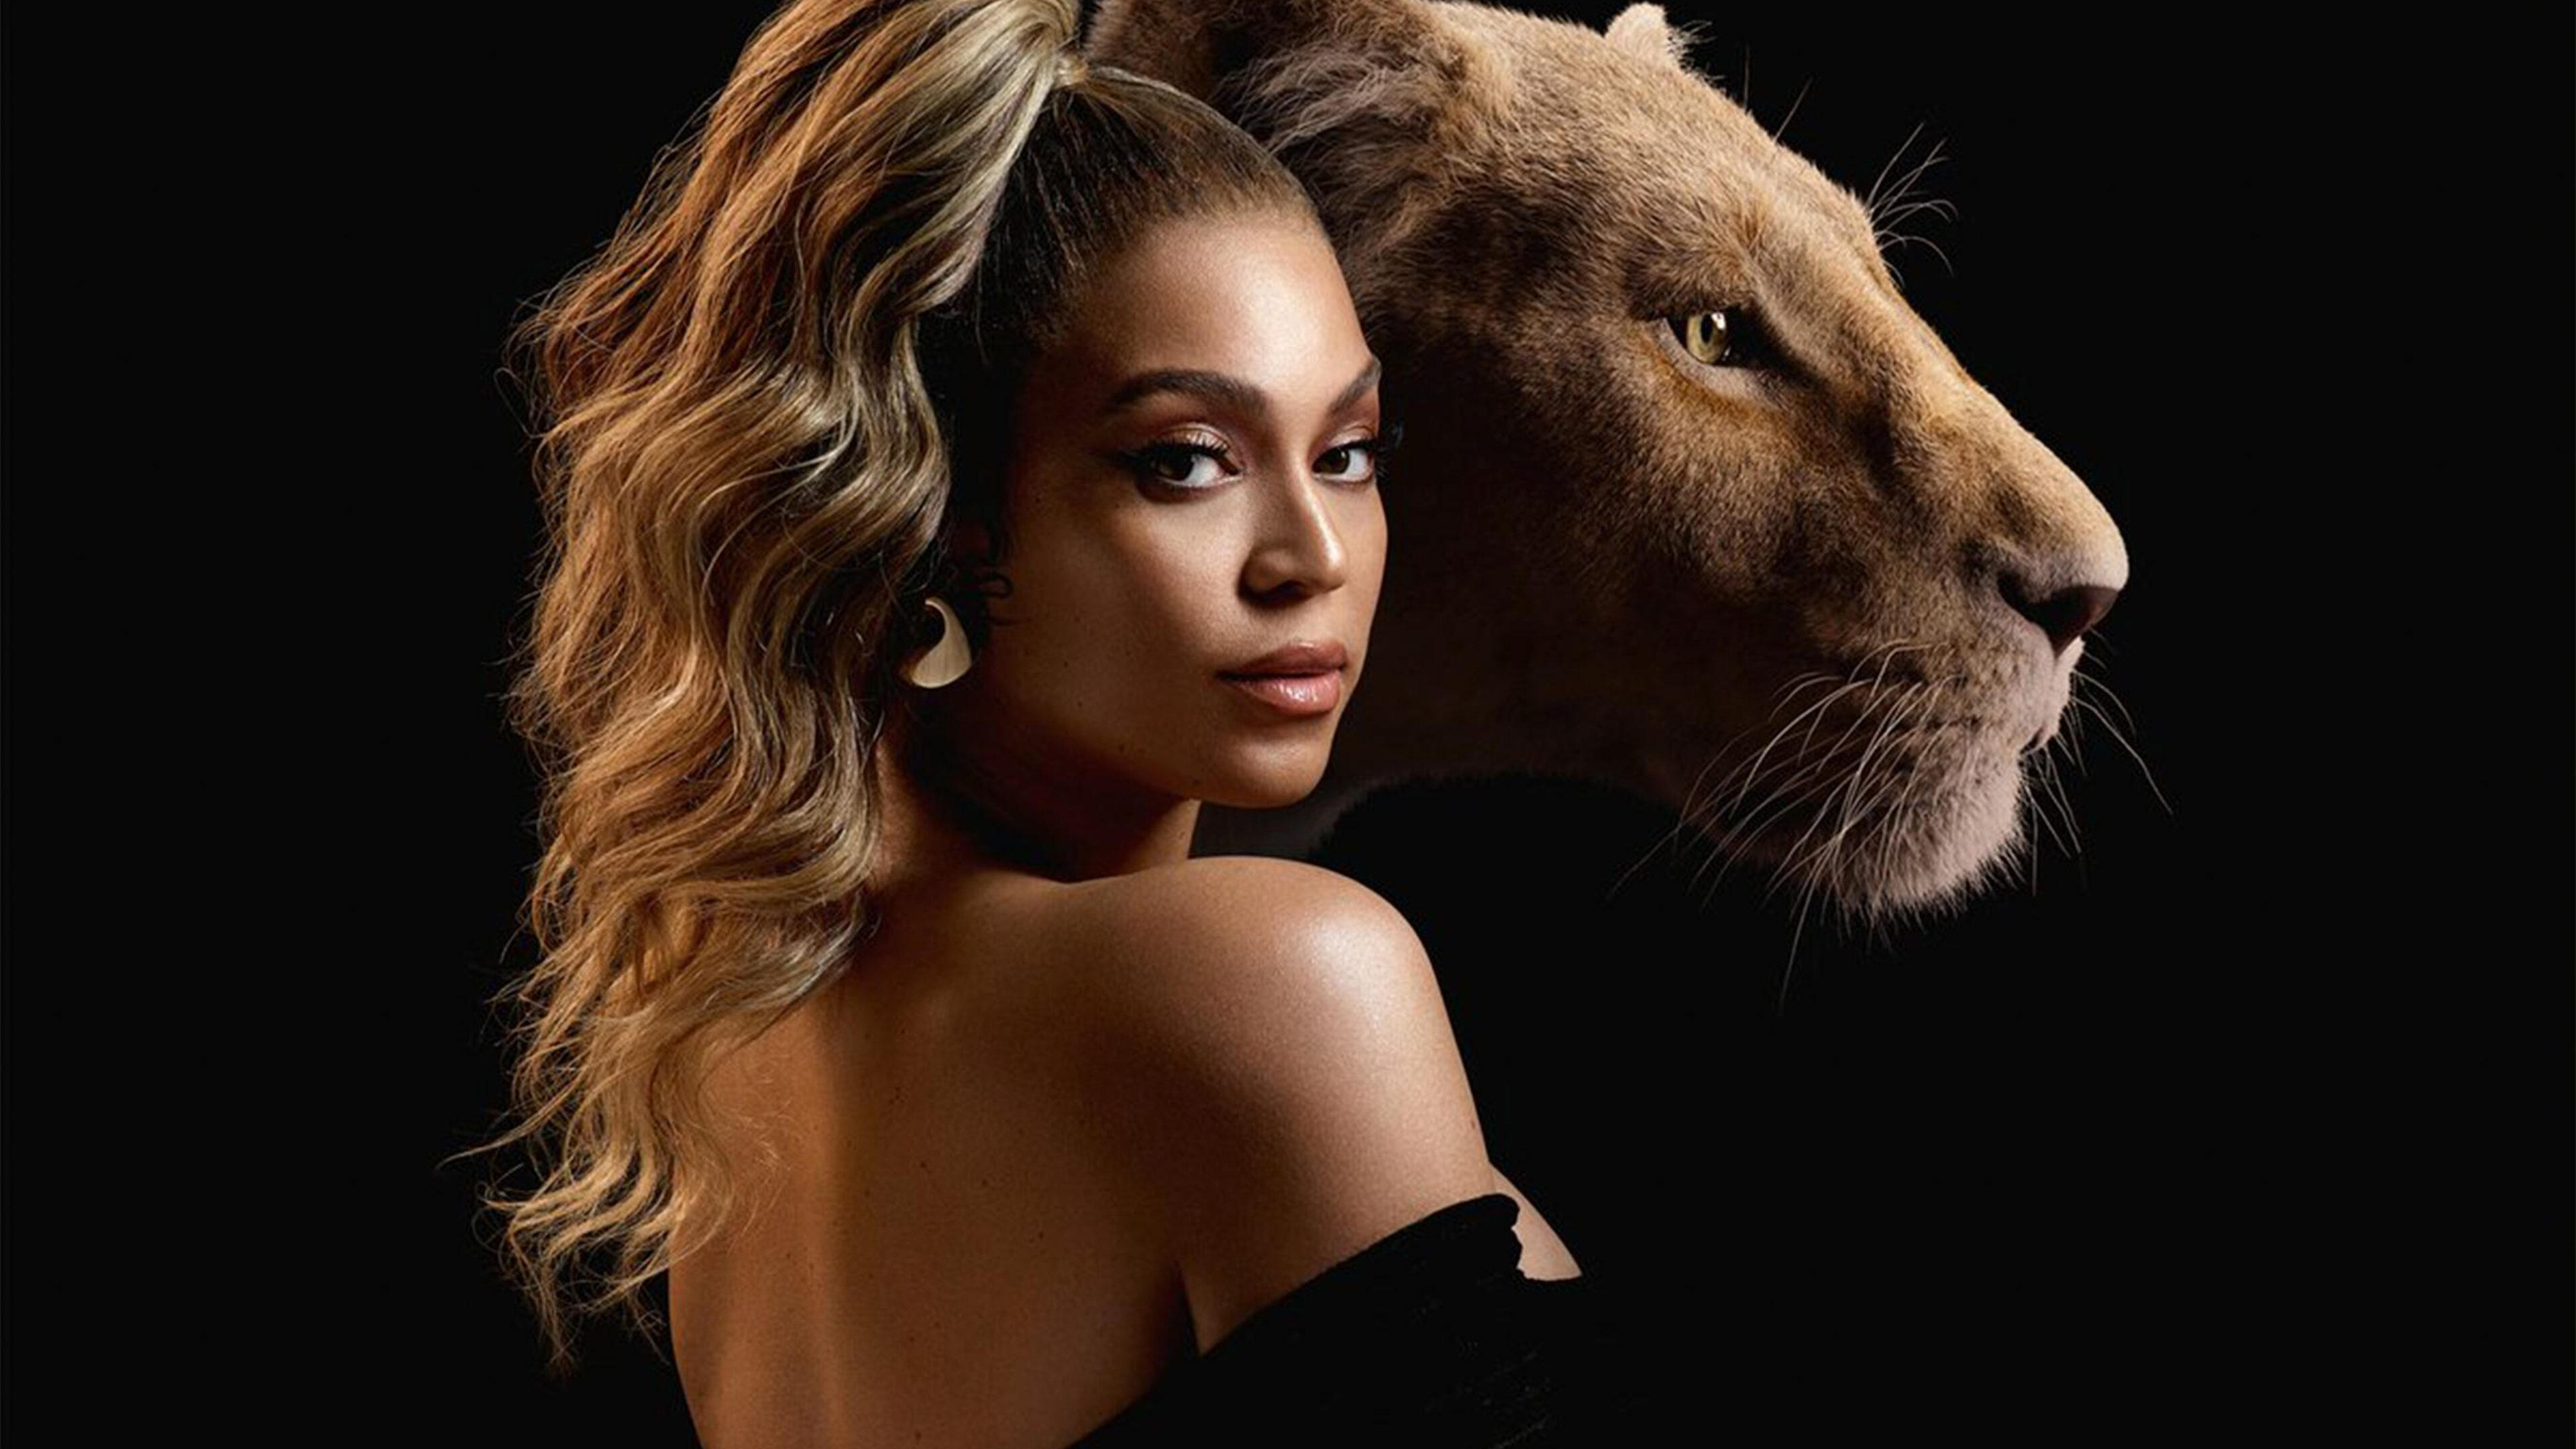 beyonce-as-nala-the-lion-king-2019-4i.jpg